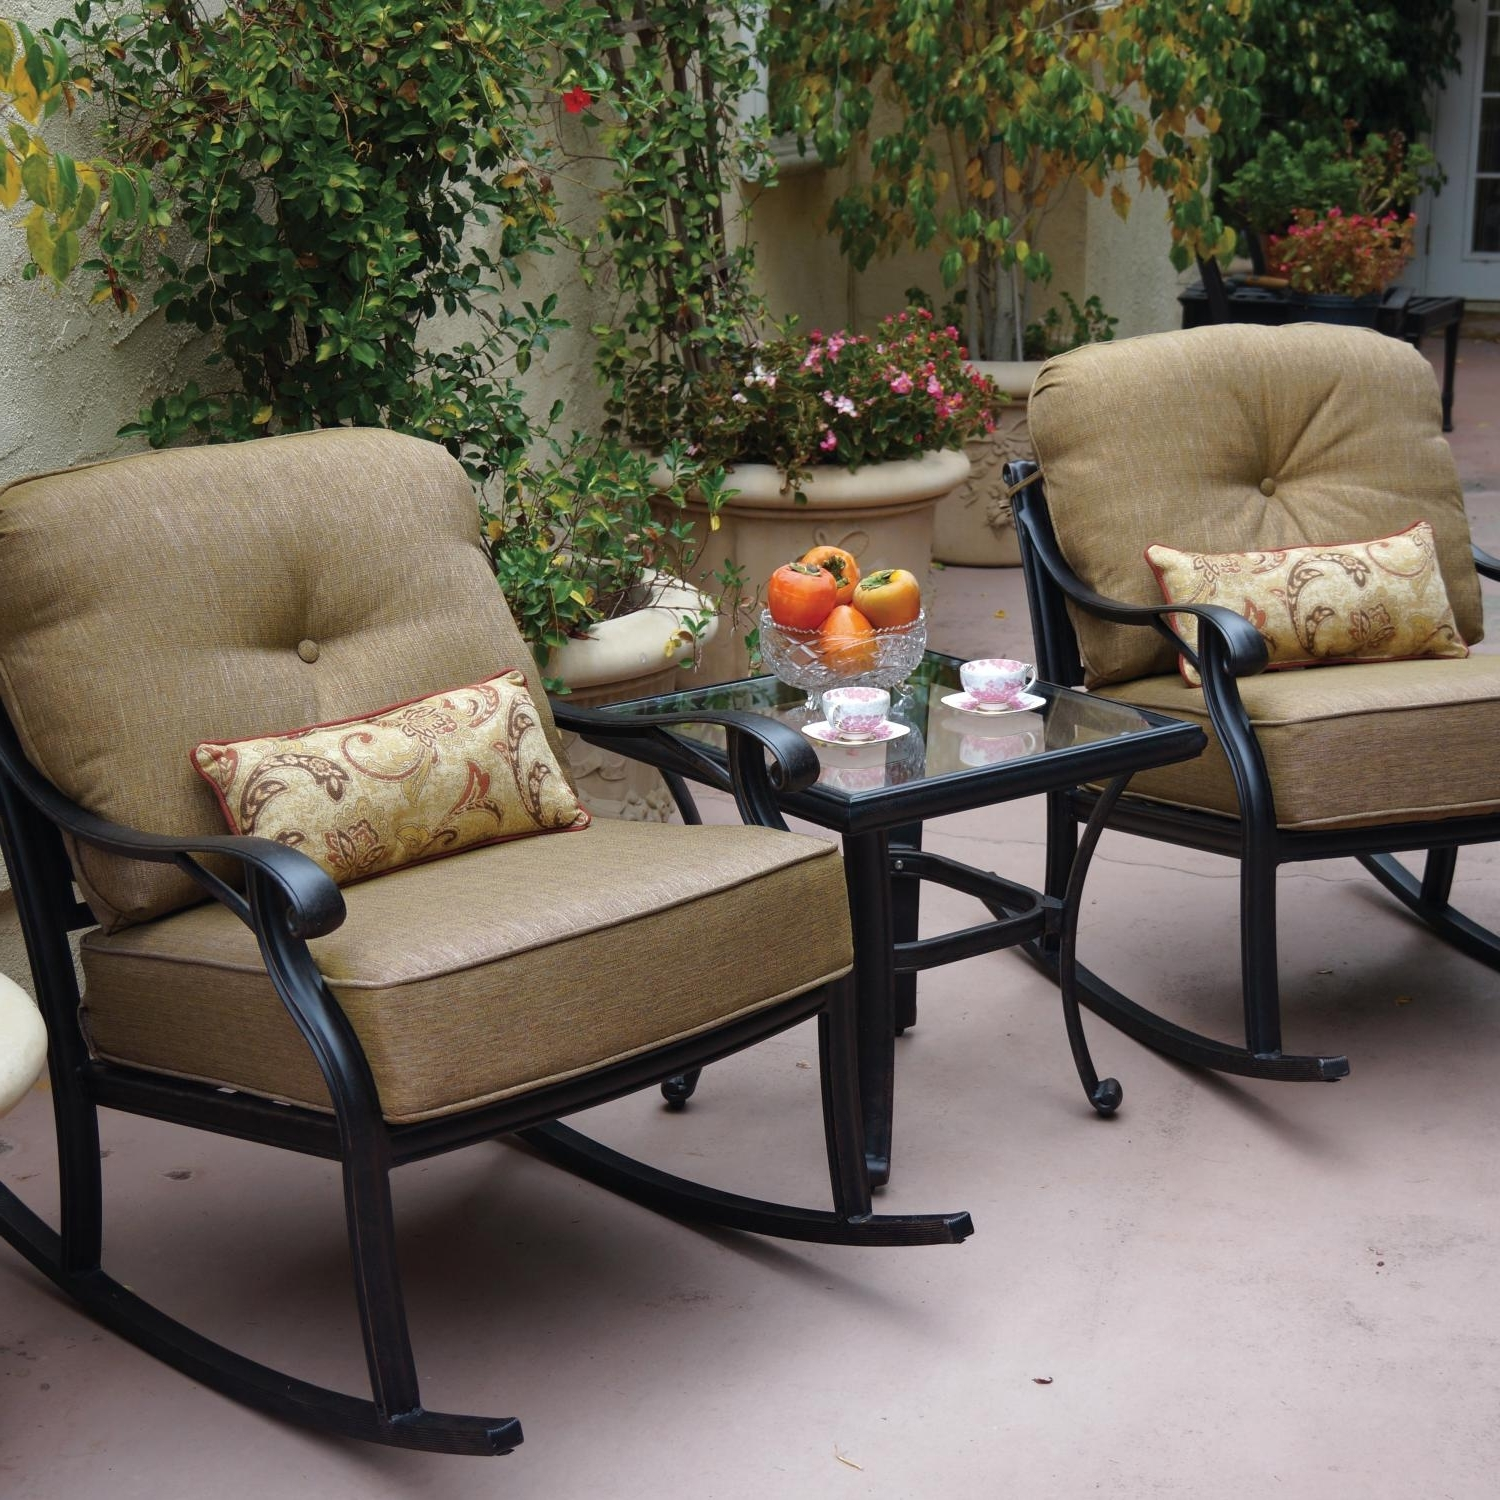 Patio Conversation Sets With Rockers Regarding Most Recently Released Darlee Nassau 3 Piece Aluminum Patio Conversation Seating Set (View 15 of 20)